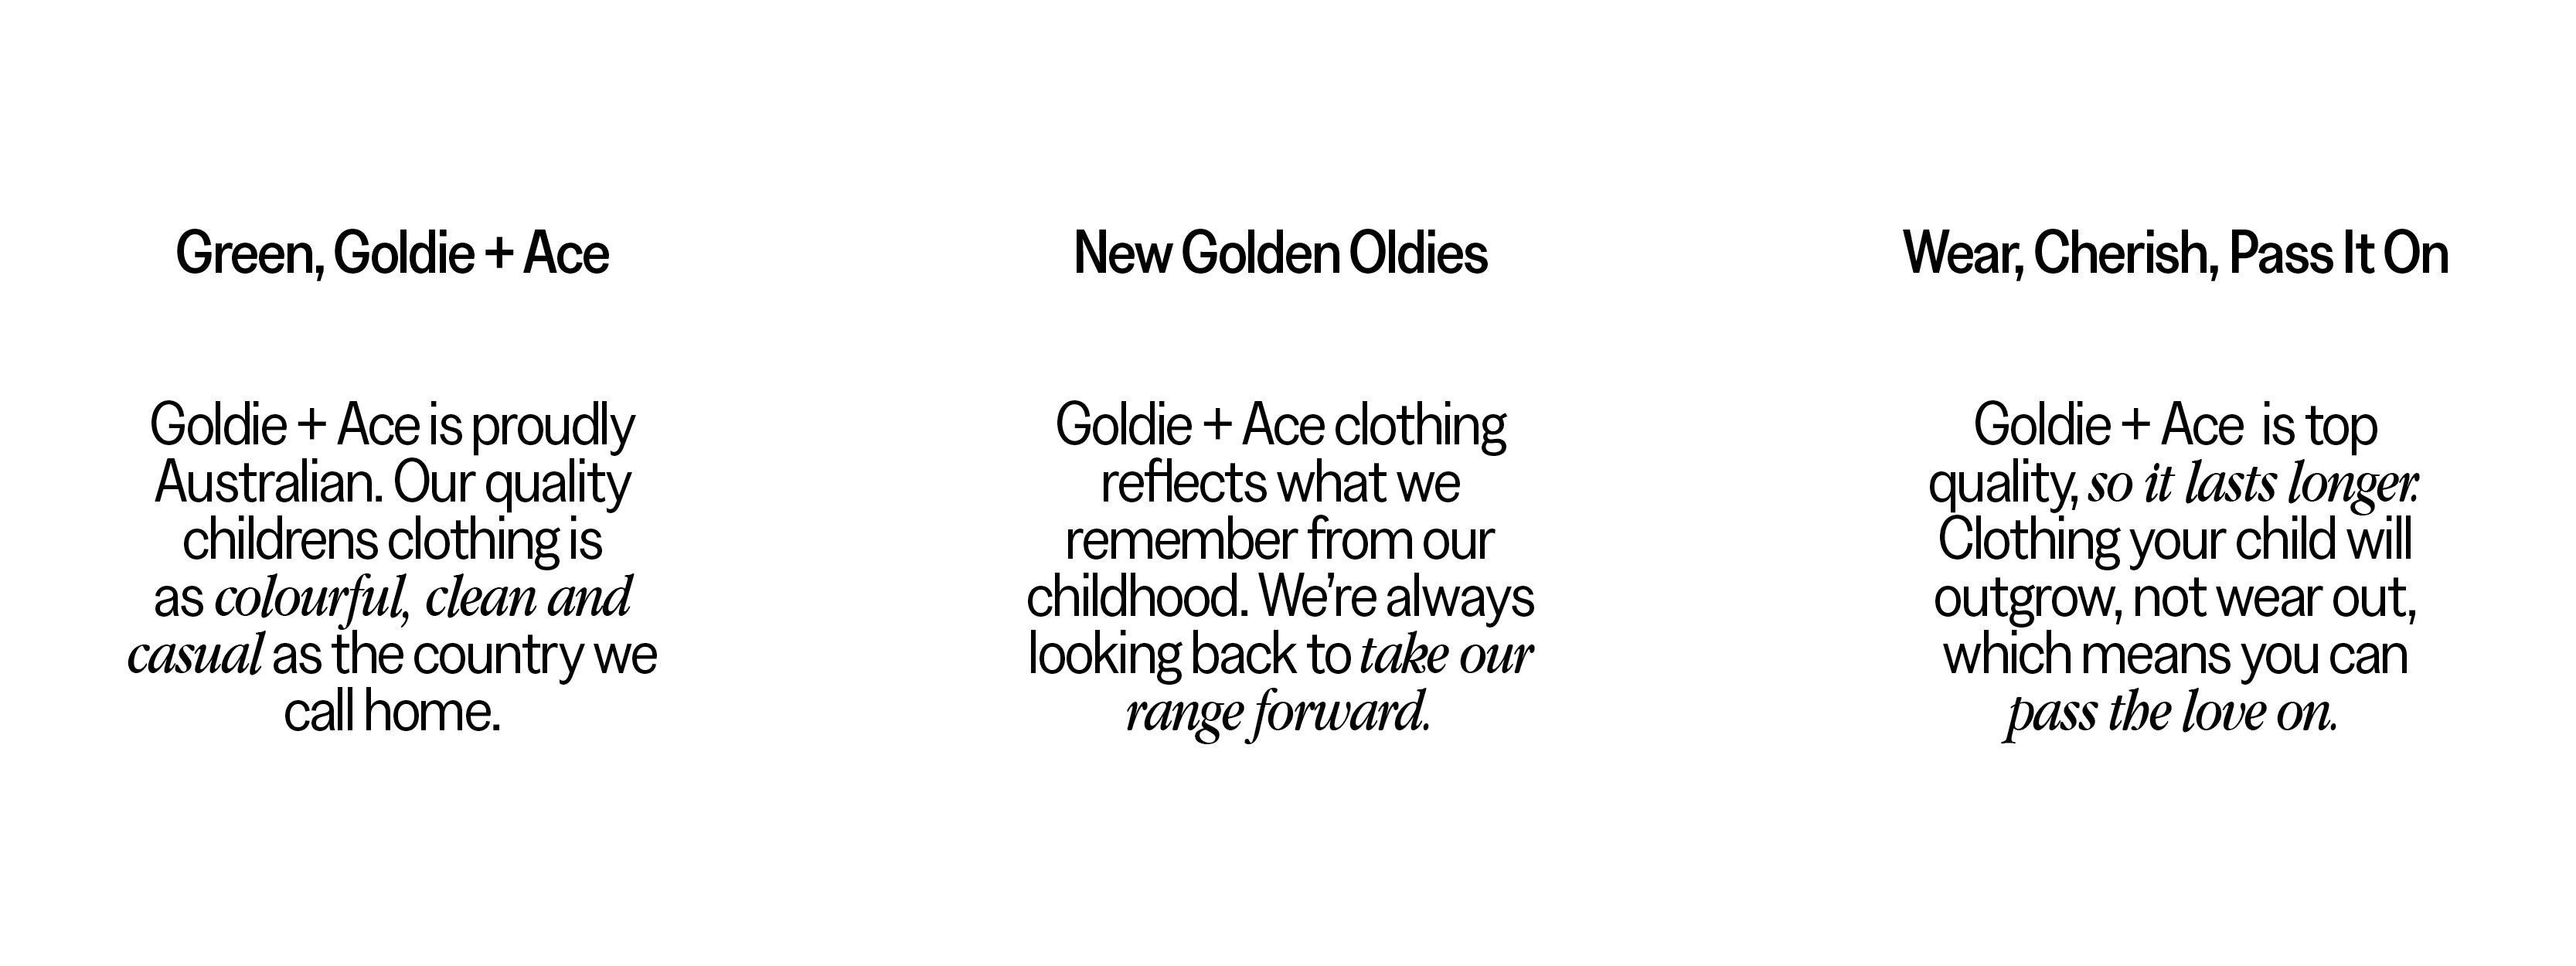 goldie and ace is proudly Australian, our quality children's clothing is as colourful, clean and casual as the place we call home.